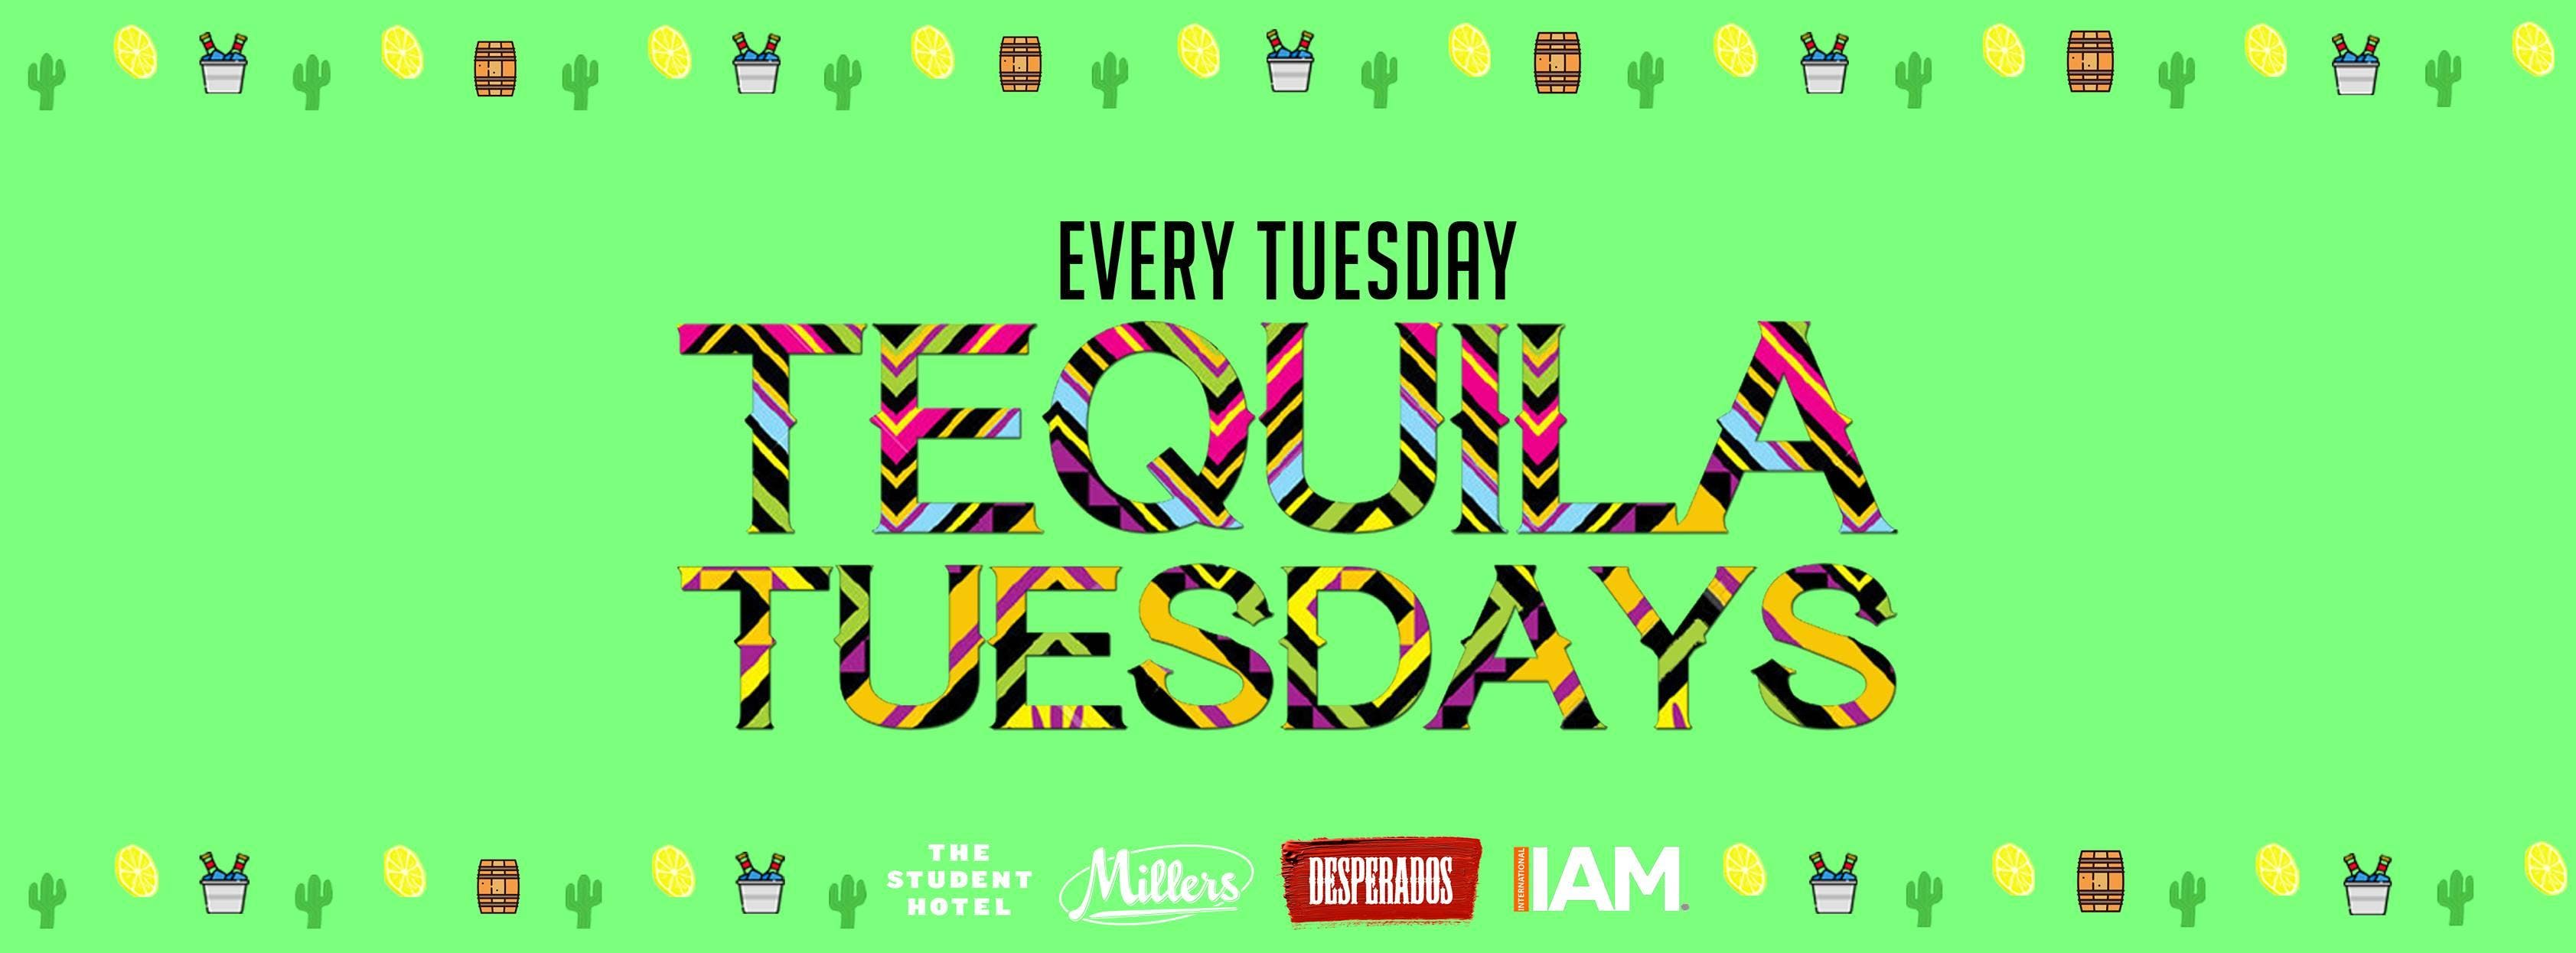 TEQUILA TUESDAYS - MILLERS DEN HAAG - POWERED